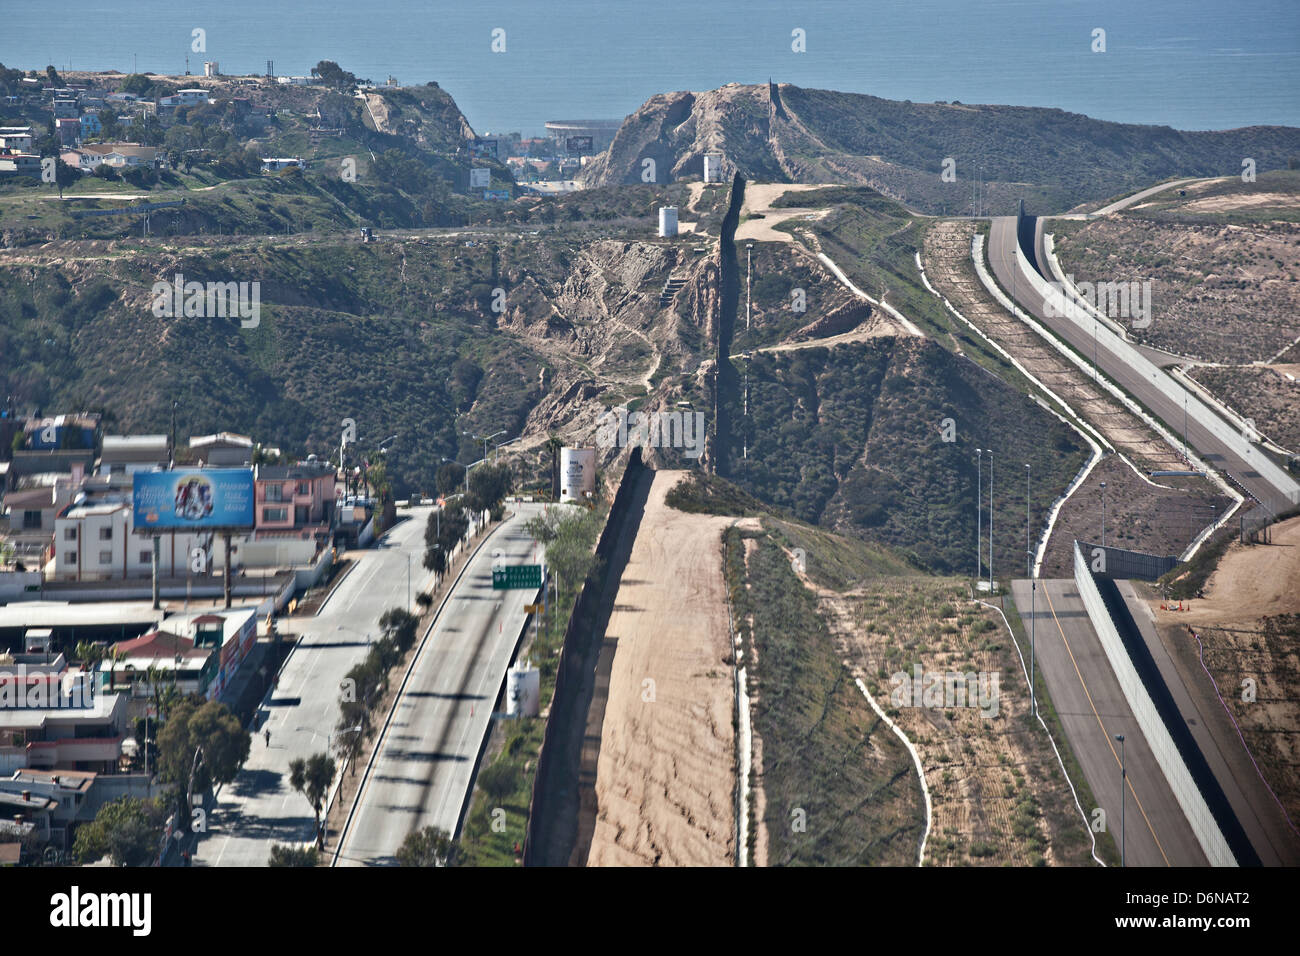 Aerial view of the border fence separating San Diego and Tijuana February 17, 2012 in San Diego, CA - Stock Image